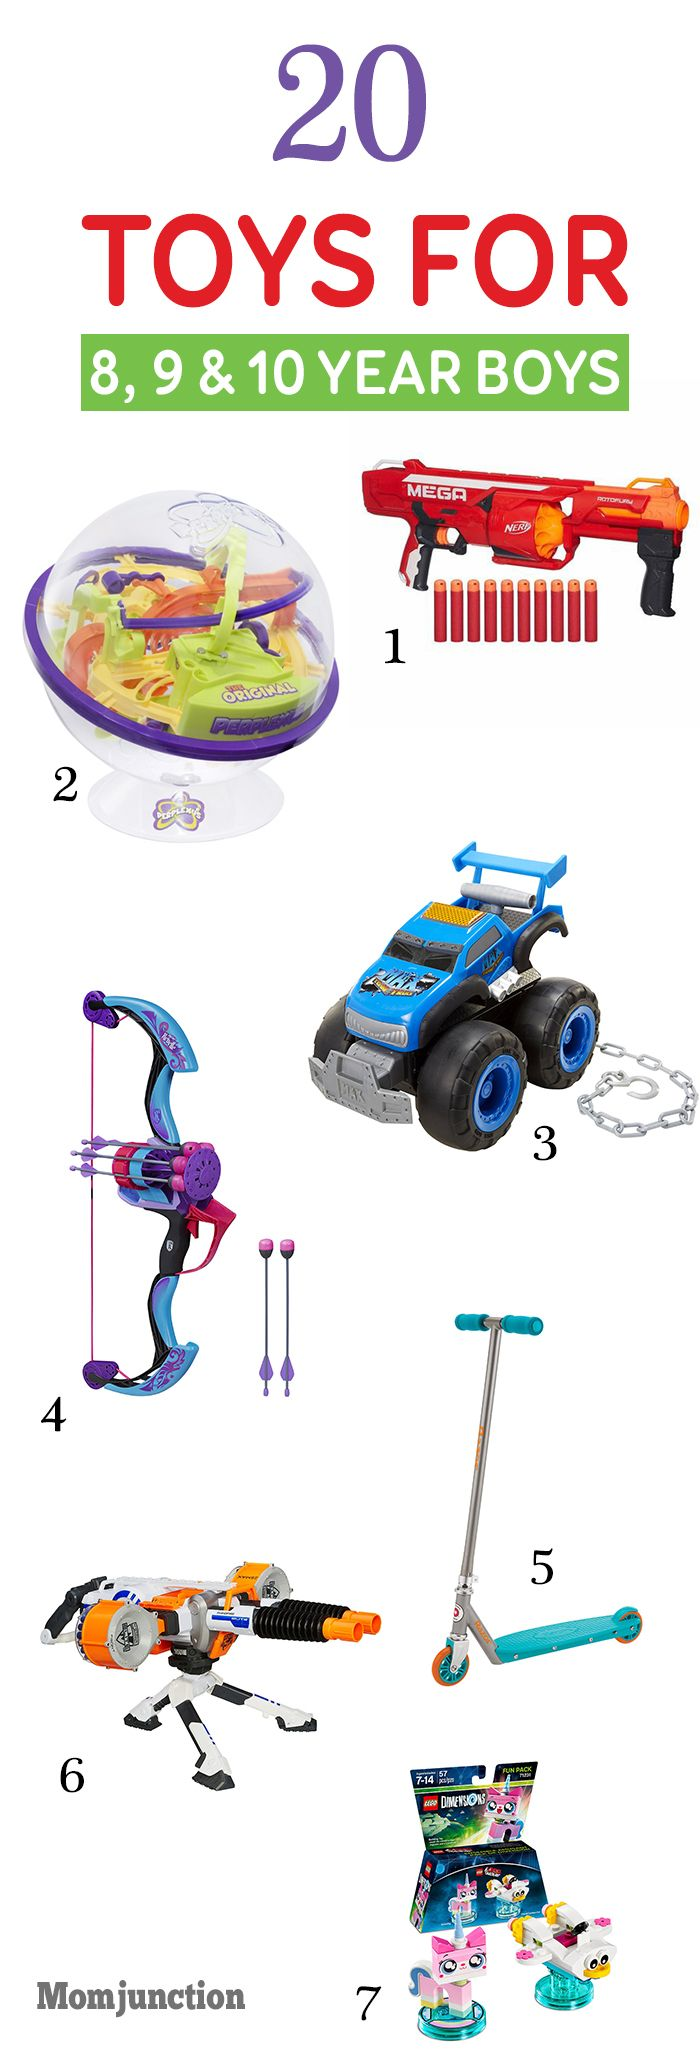 19 Perfect Toys For 8 9 And 10 Year Old Boys Kids 9